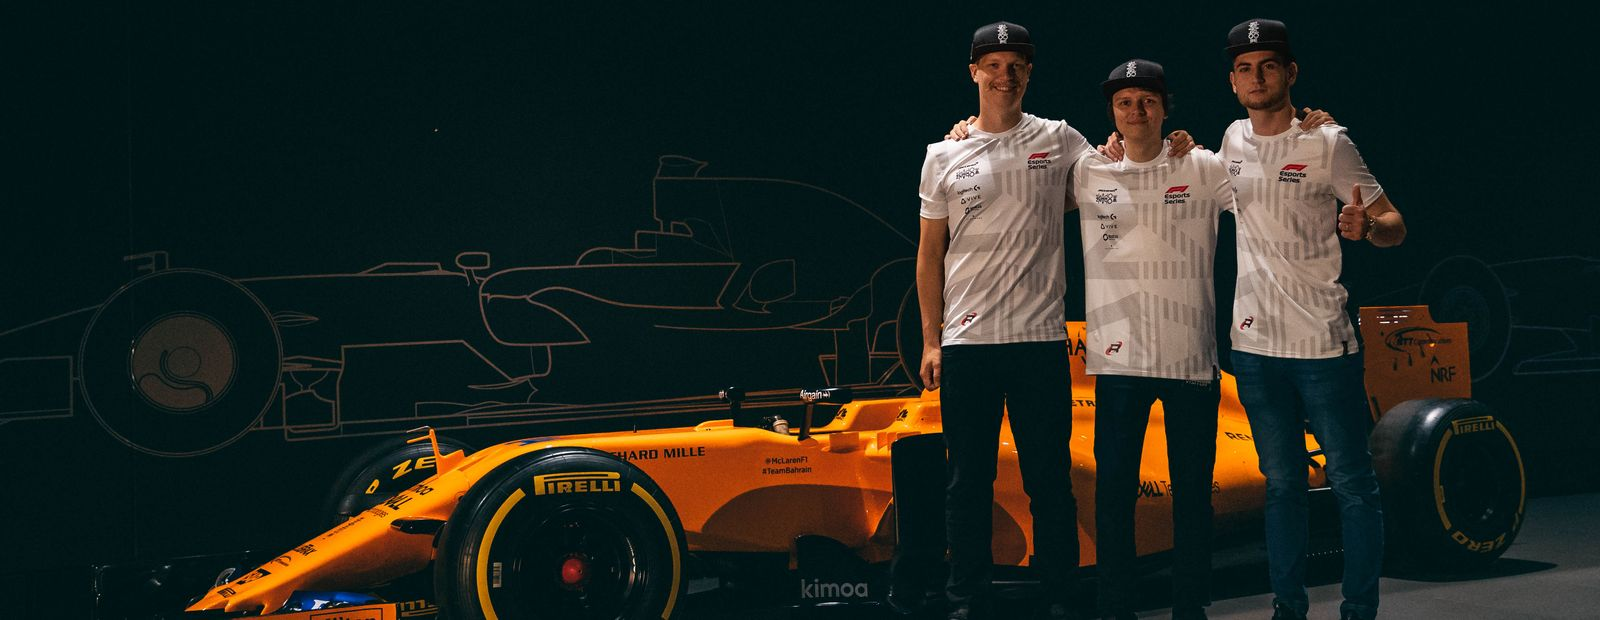 McLaren Shadow F1 esports team announced